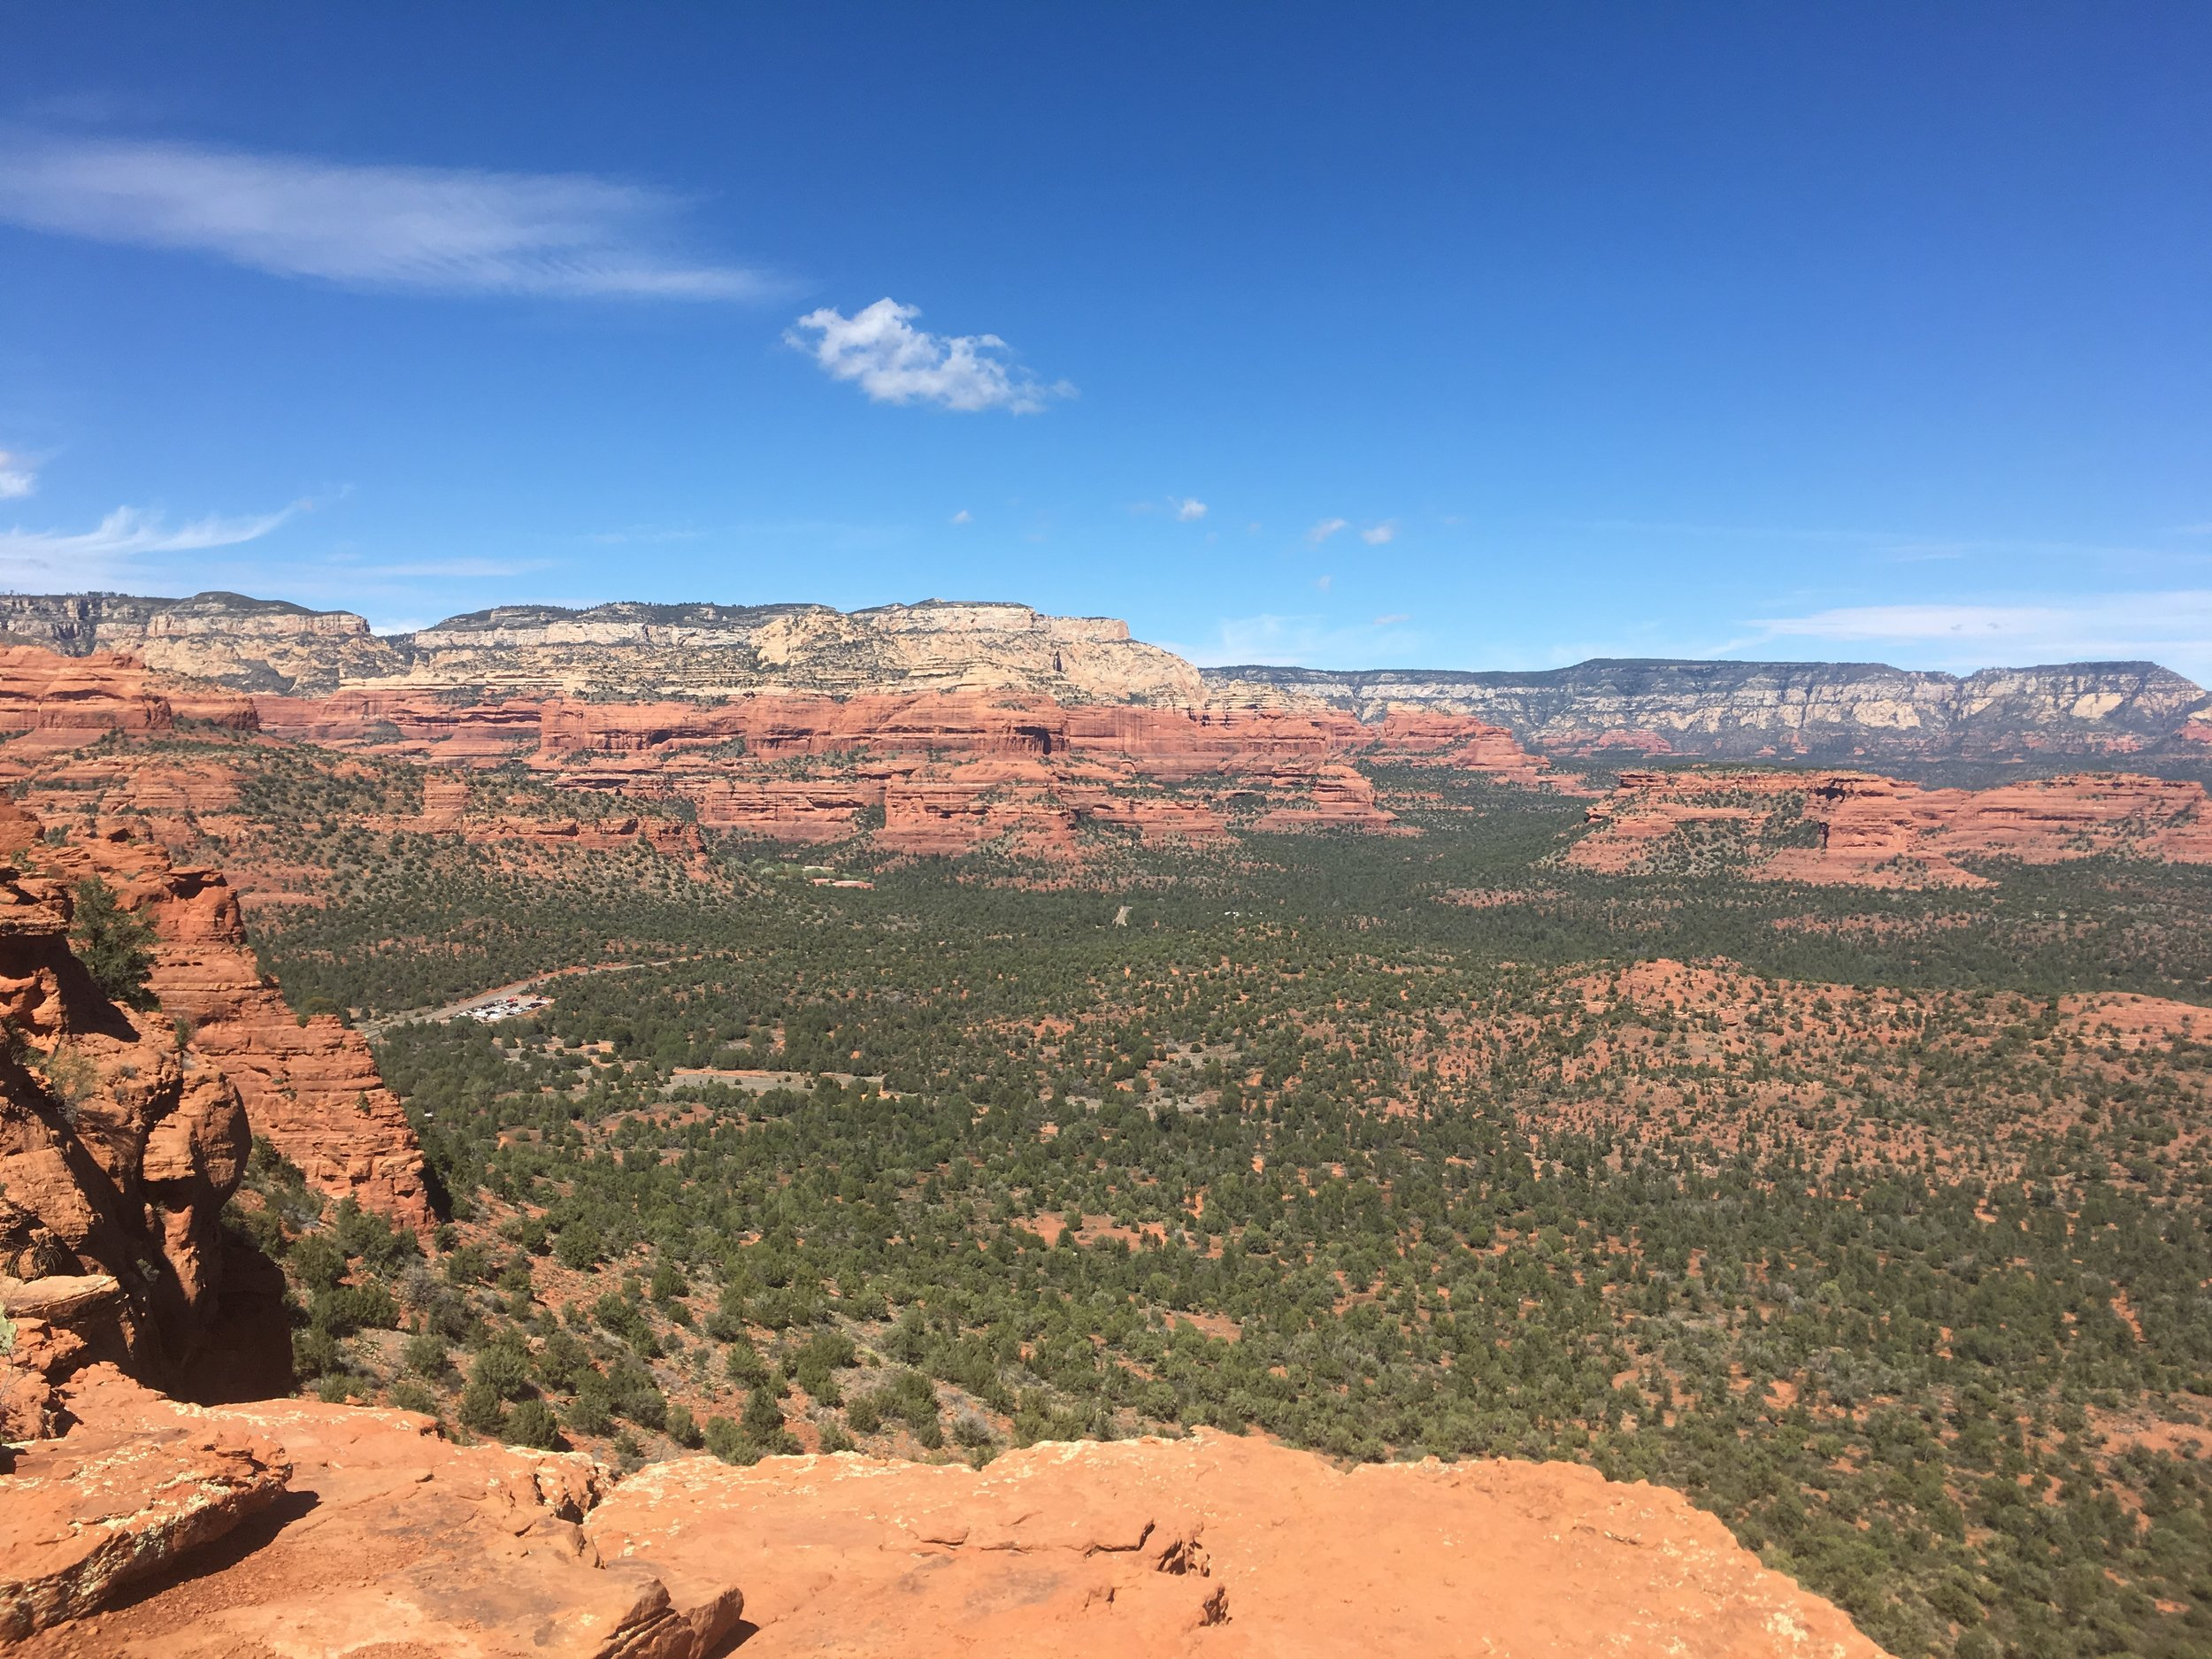 View from atop a hike in Sedona, AZ